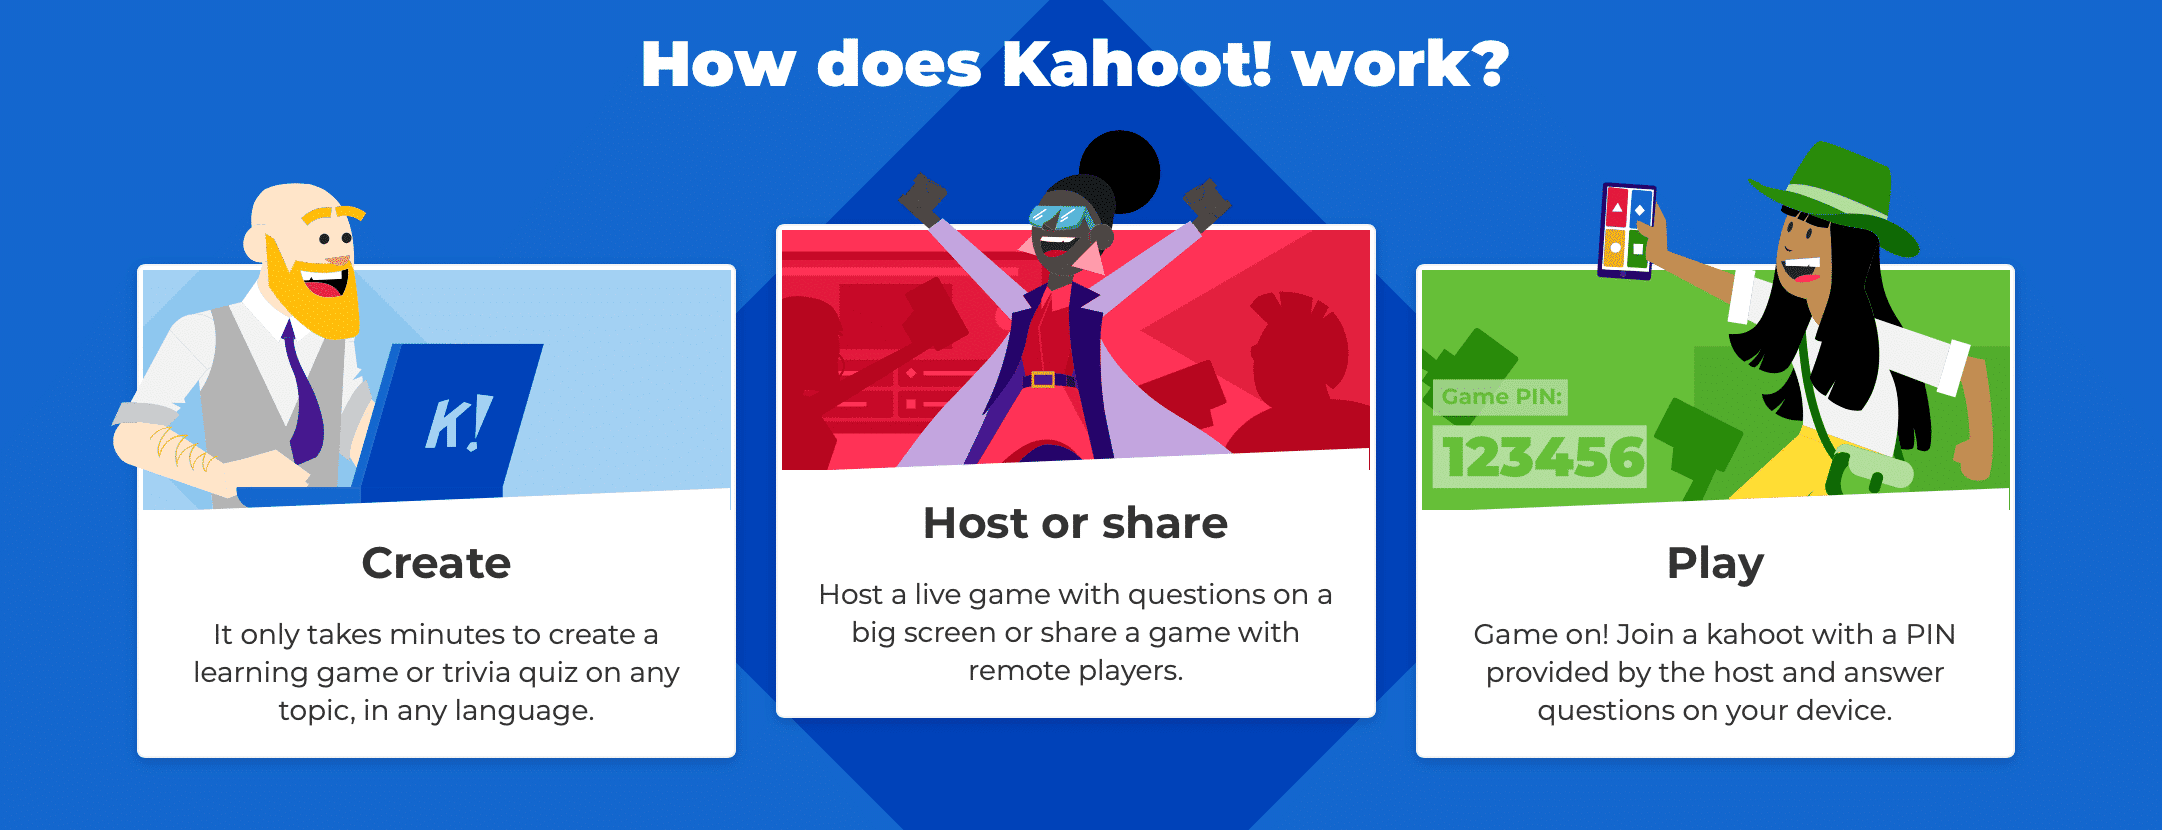 screen shot of Kahoot! game and learning website